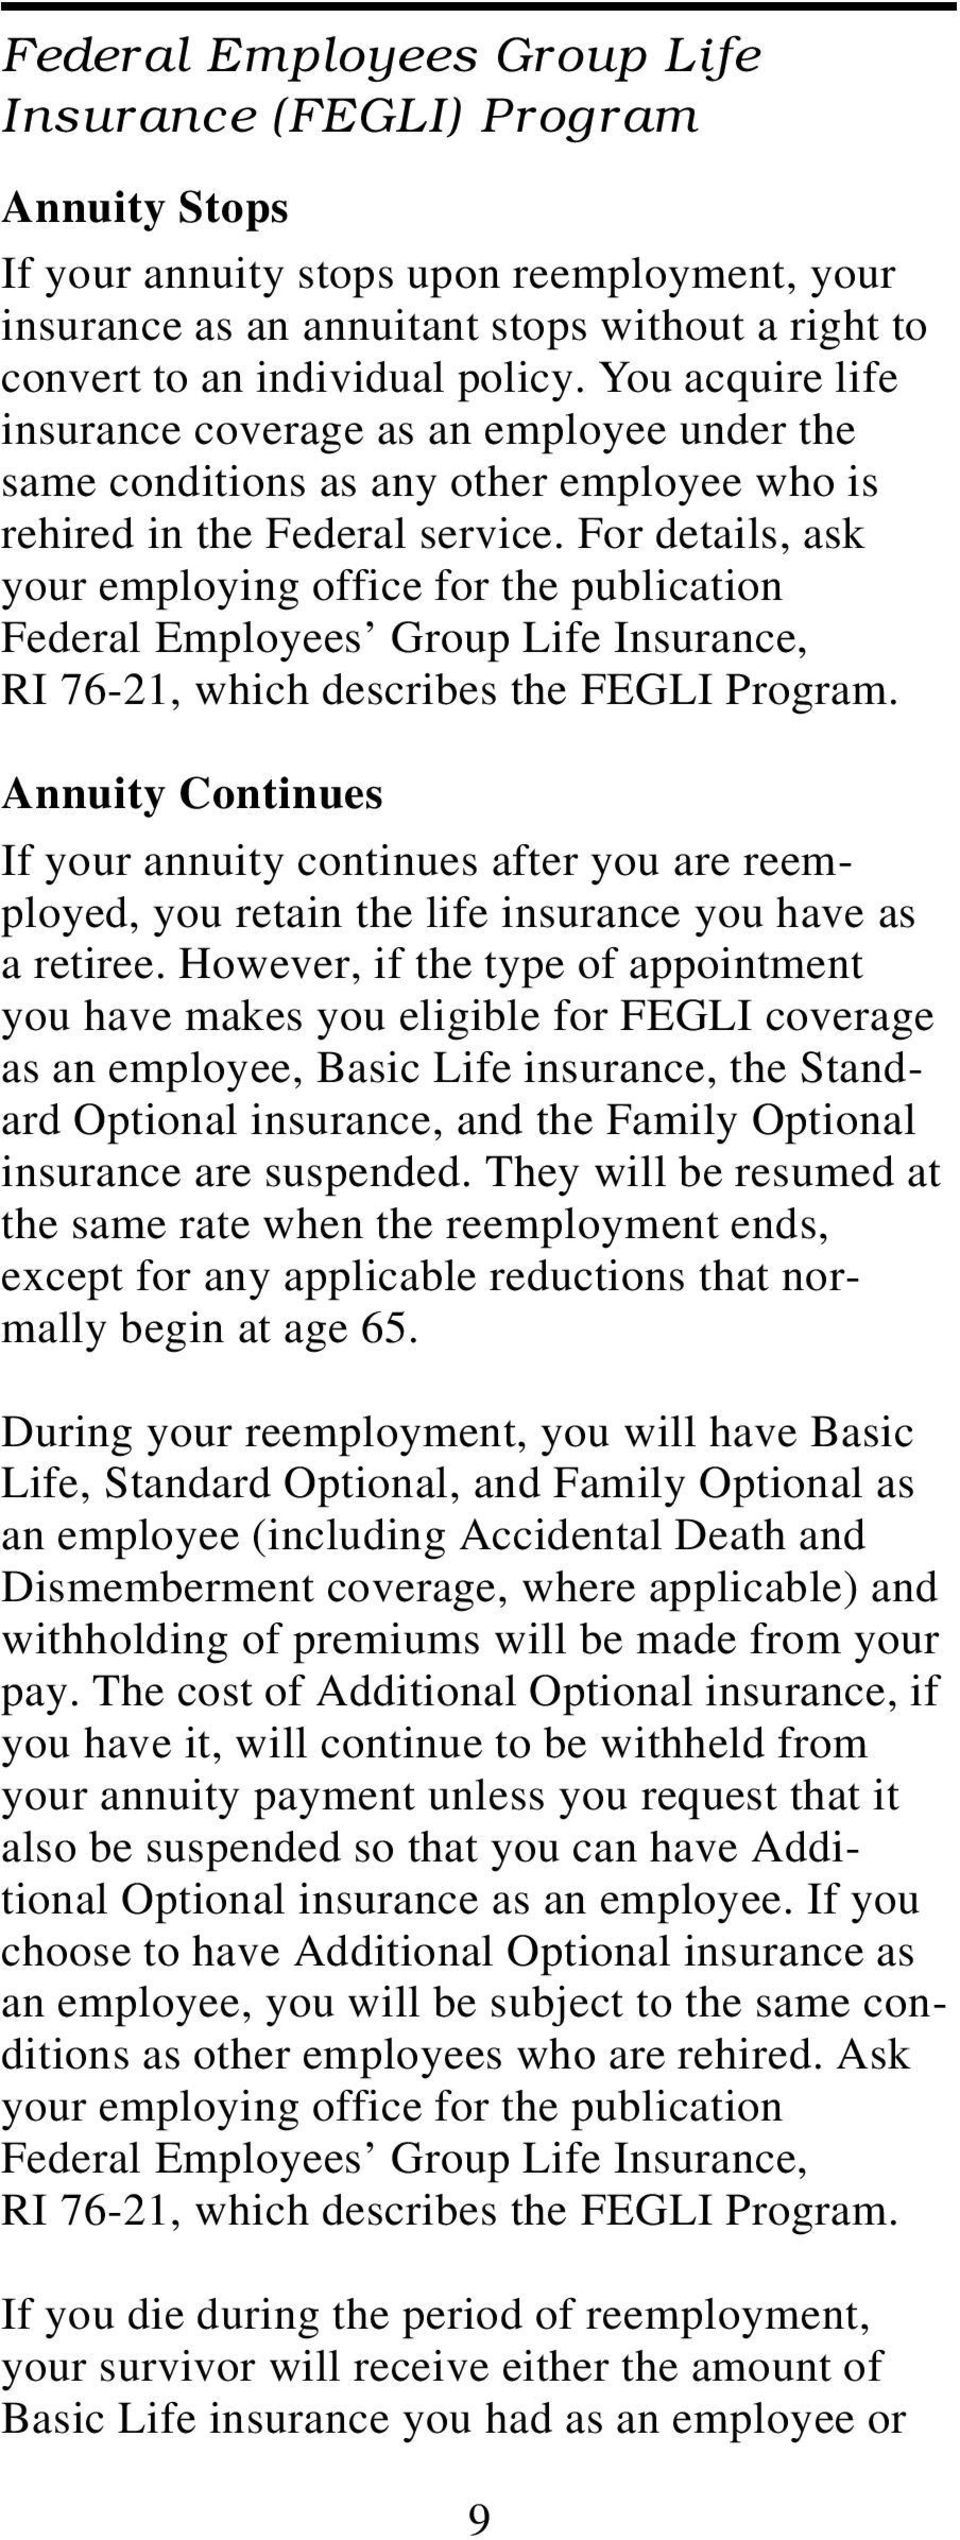 For details, ask your employing office for the publication Federal Employees Group Life Insurance, RI 76-21, which describes the FEGLI Program.